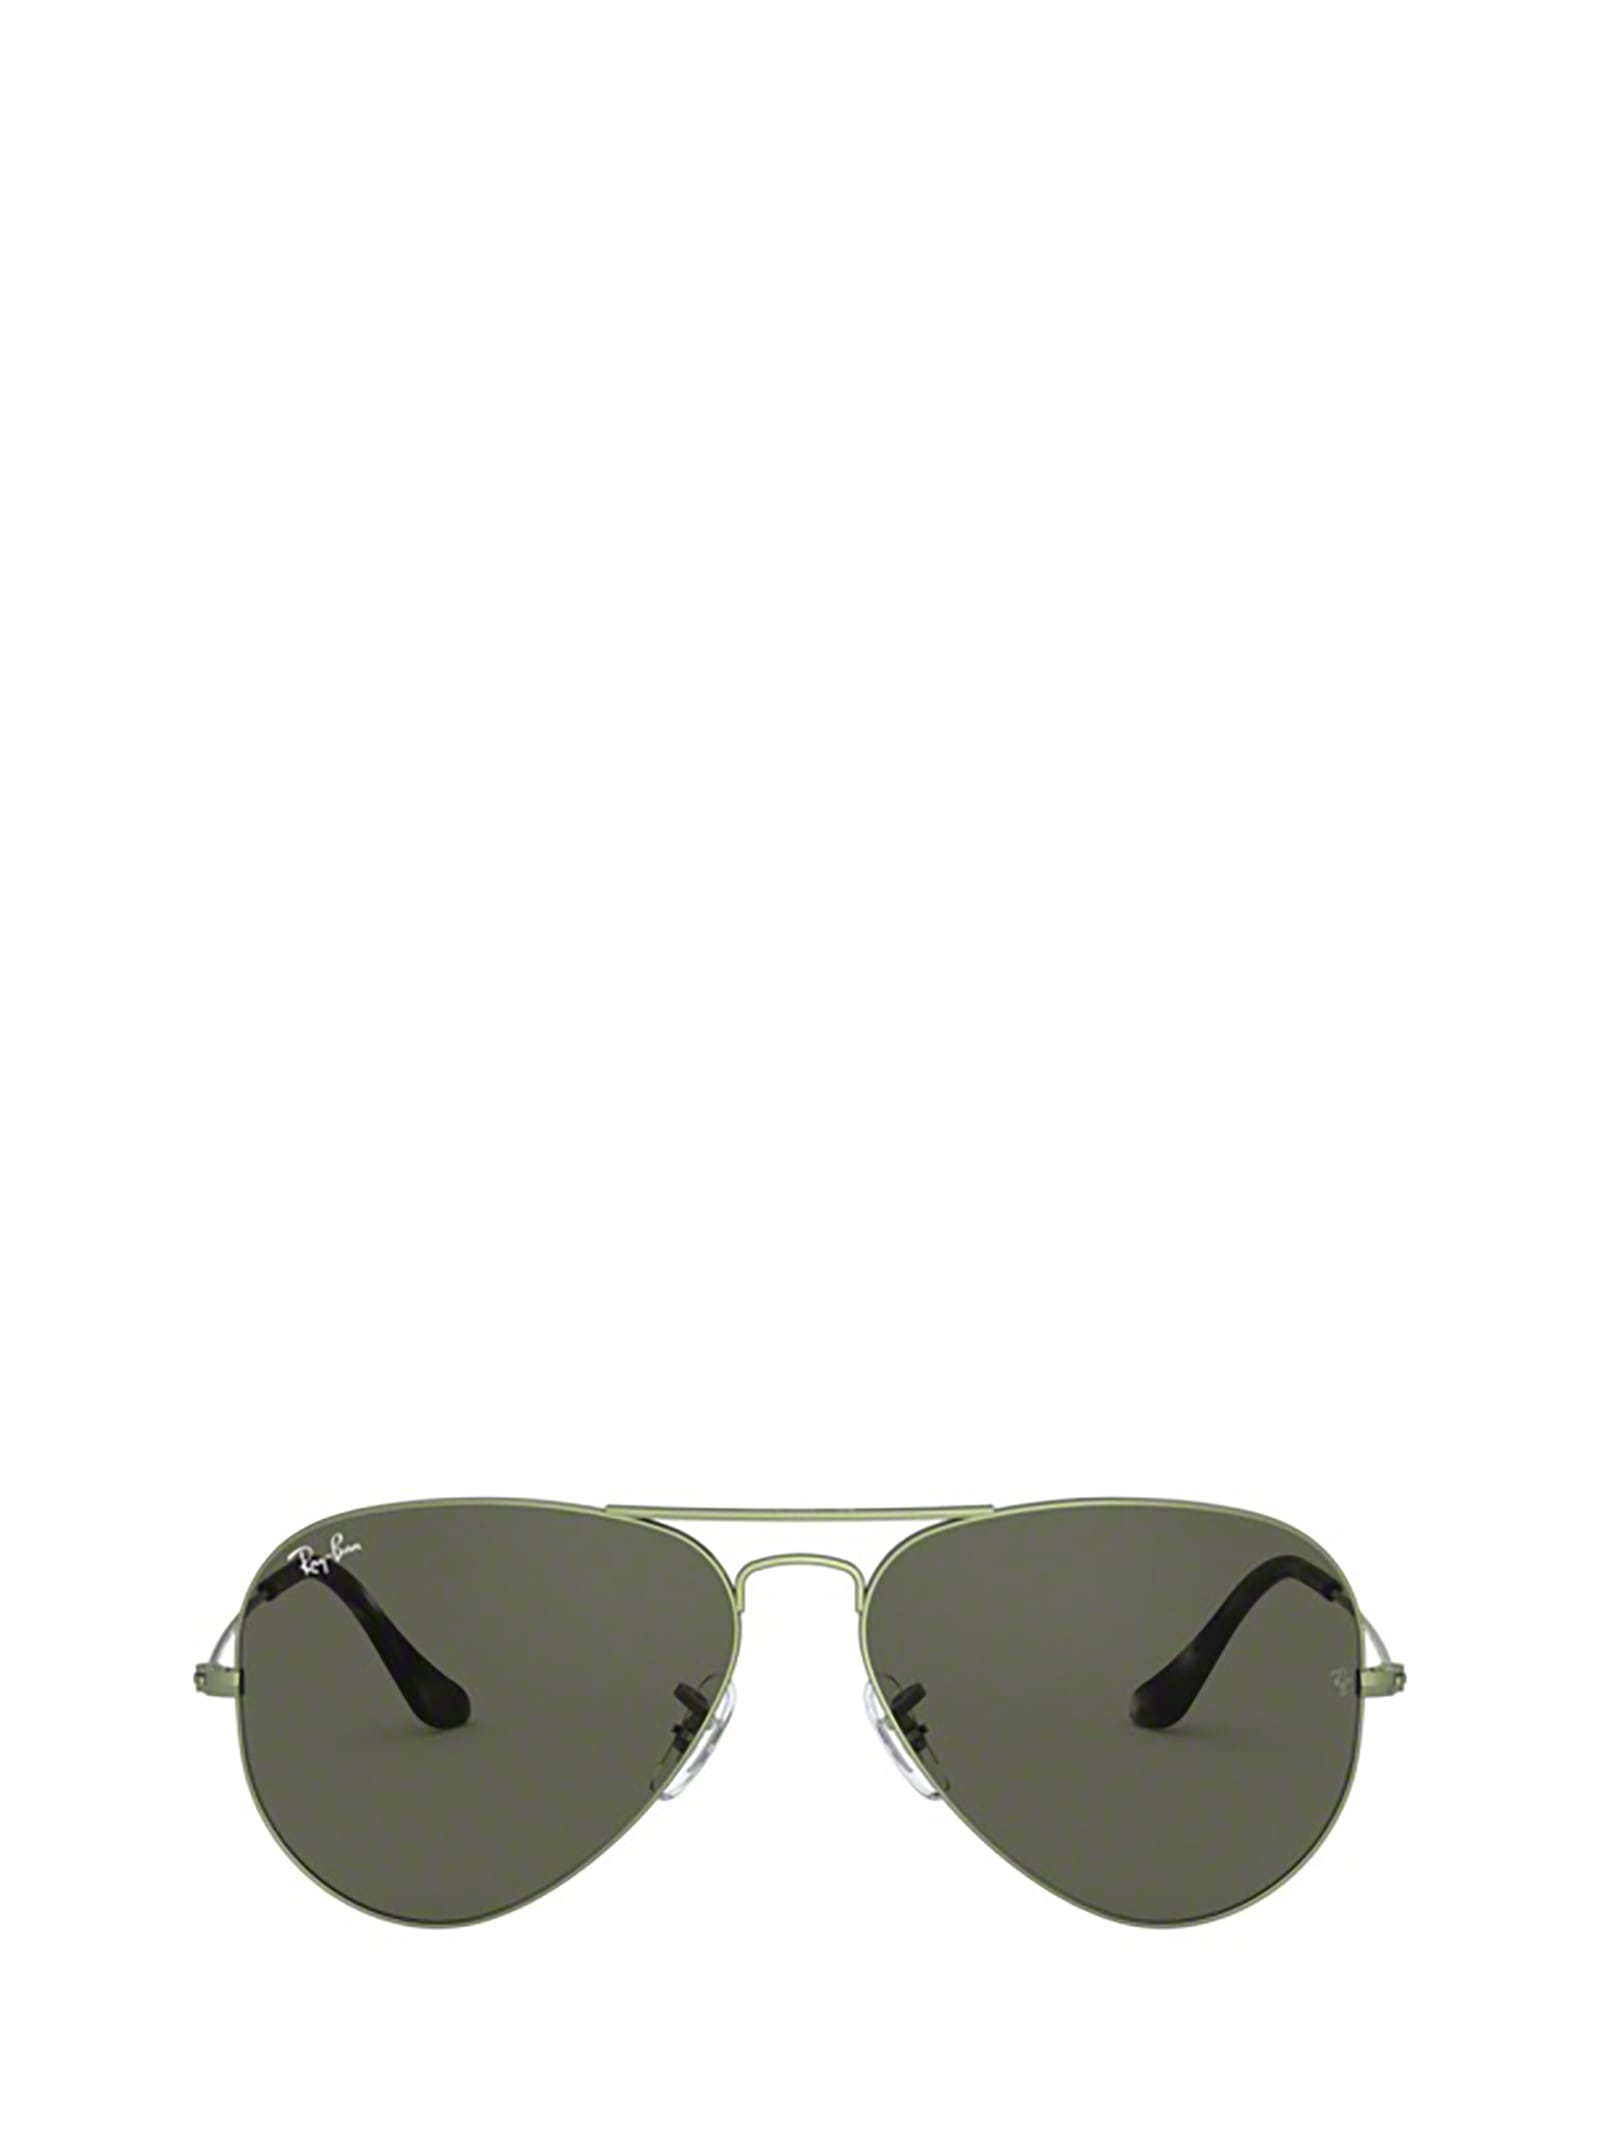 Ray-Ban Ray-ban Rb3025 Sand Transparent Green Sunglasses